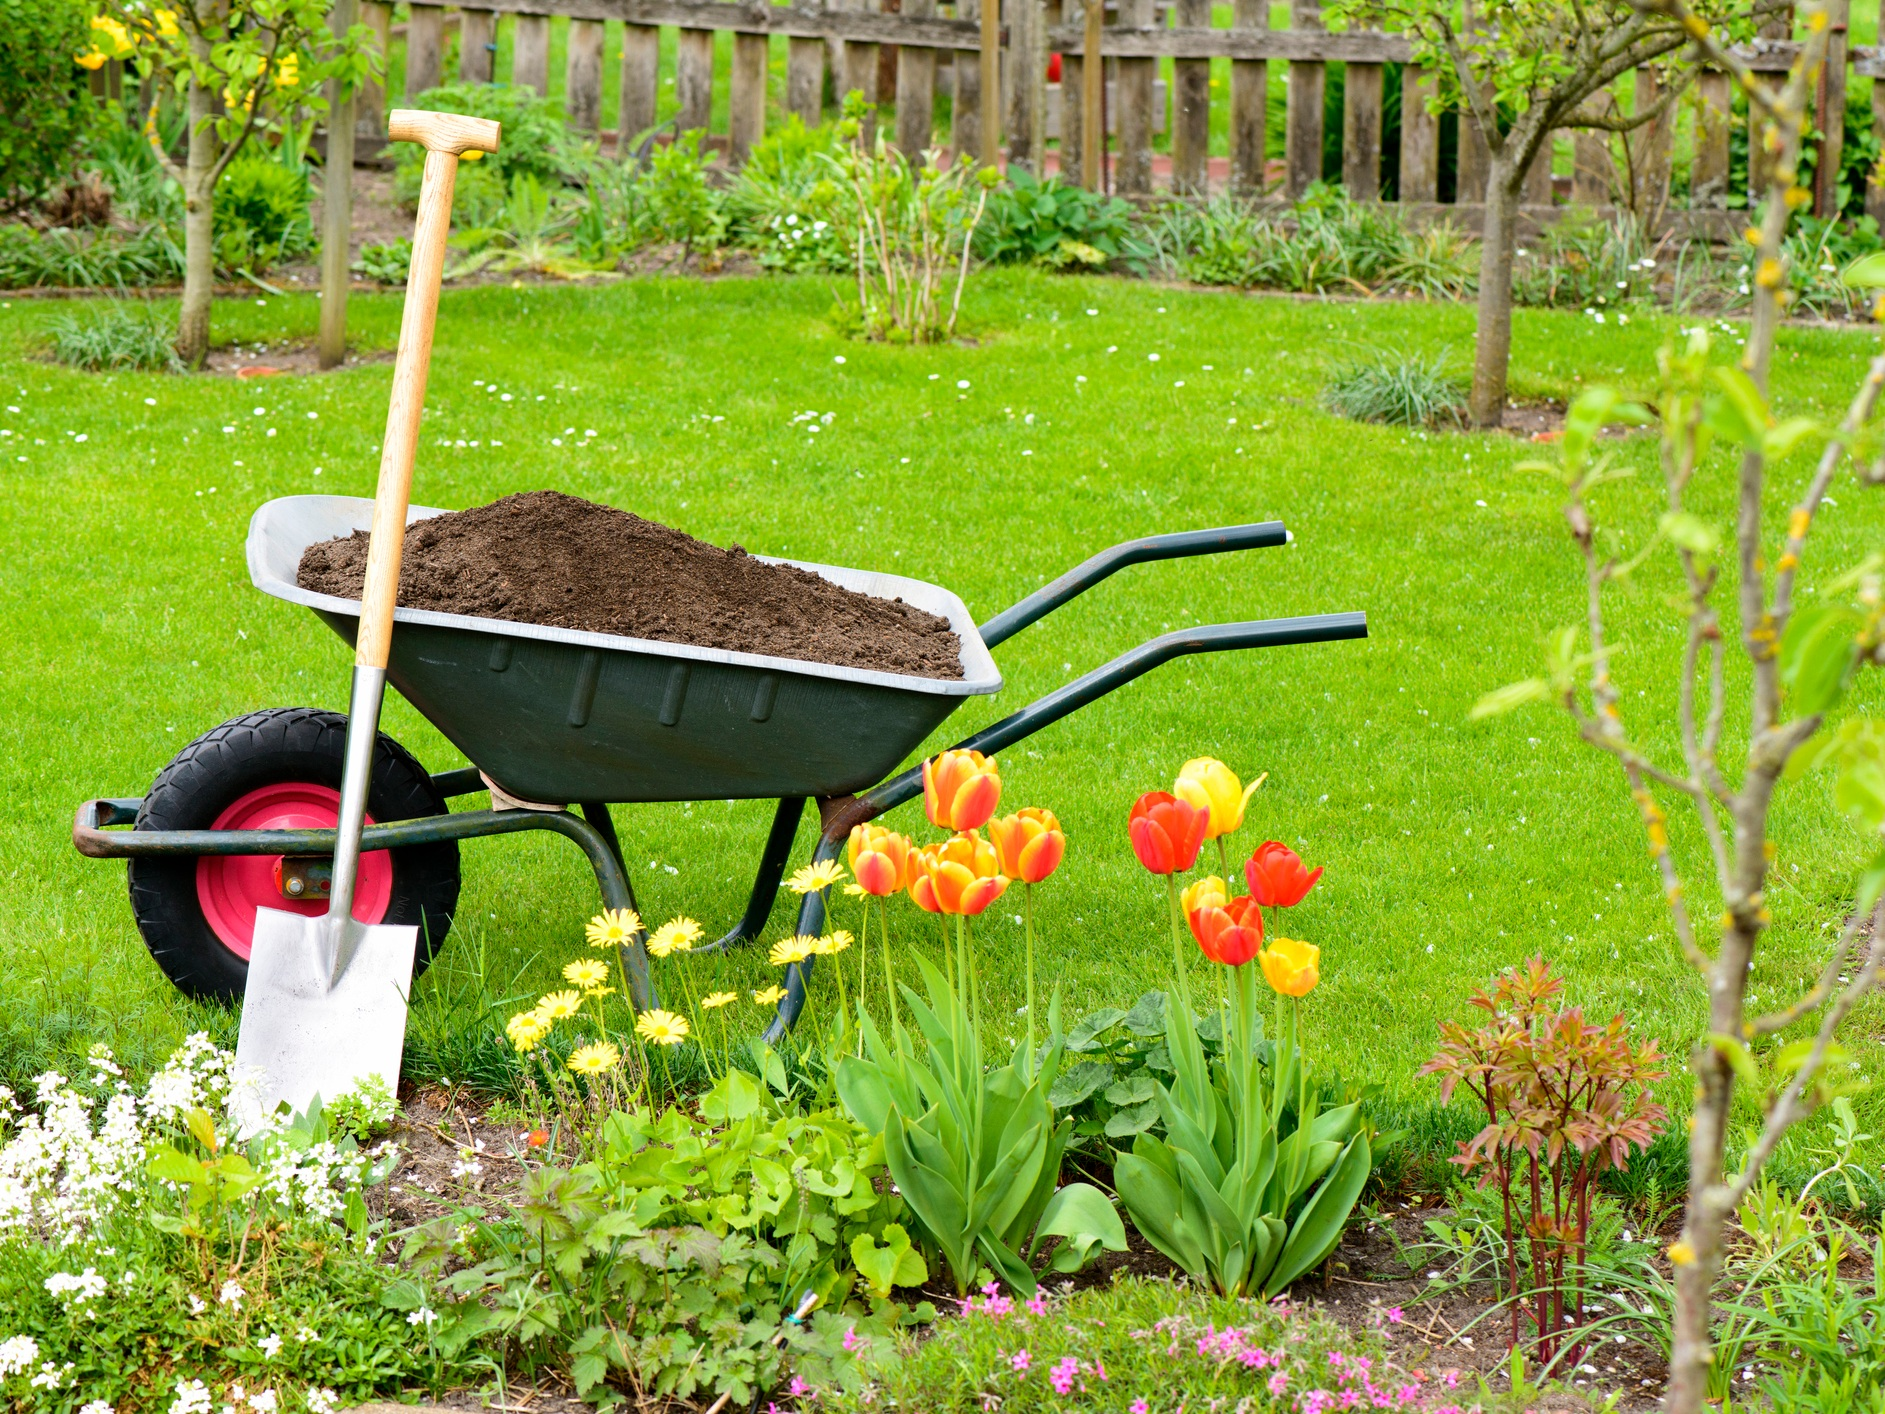 SEASONAL MAINTENANCE POSITIONS - We are currently looking for a full time or part time custodian ASAP. Call Steve at 801.924.7520 for details.We are currently looking for a reliable individual to handle all of our summer flowerpot and flower garden watering/weeding. This position is a seven day a week 2-3 hour per day part time position, flexible start time (early mornings preferred). Must be a motivated self-starter, as the watering duties must be completed every day, regardless of other staff attendance or non-attendance. Must be at least 21 years old and a competent and safe driver, as you will be driving a company owned vehicle to and from watering locations around a park facility.Afternoon/Evening/Weekend Landscaping/Maintenance helpers: Individuals will need to be able to operate standard landscaping equipment: i.e. lawnmowers, trimmers as well as be willing to help with a variety of light maintenance tasks including moving tables and chairs. Needs to be able to work well with others, be courteous to the public, and be able to take instruction and work quickly. Must be able to efficiently work unsupervised and be able to lift 20lbs above your head. Quick learners are welcome, some experience preferred.Please email your resume to shirschi@thisistheplace.org. Call Steve at 801.924.7520 with any questions.